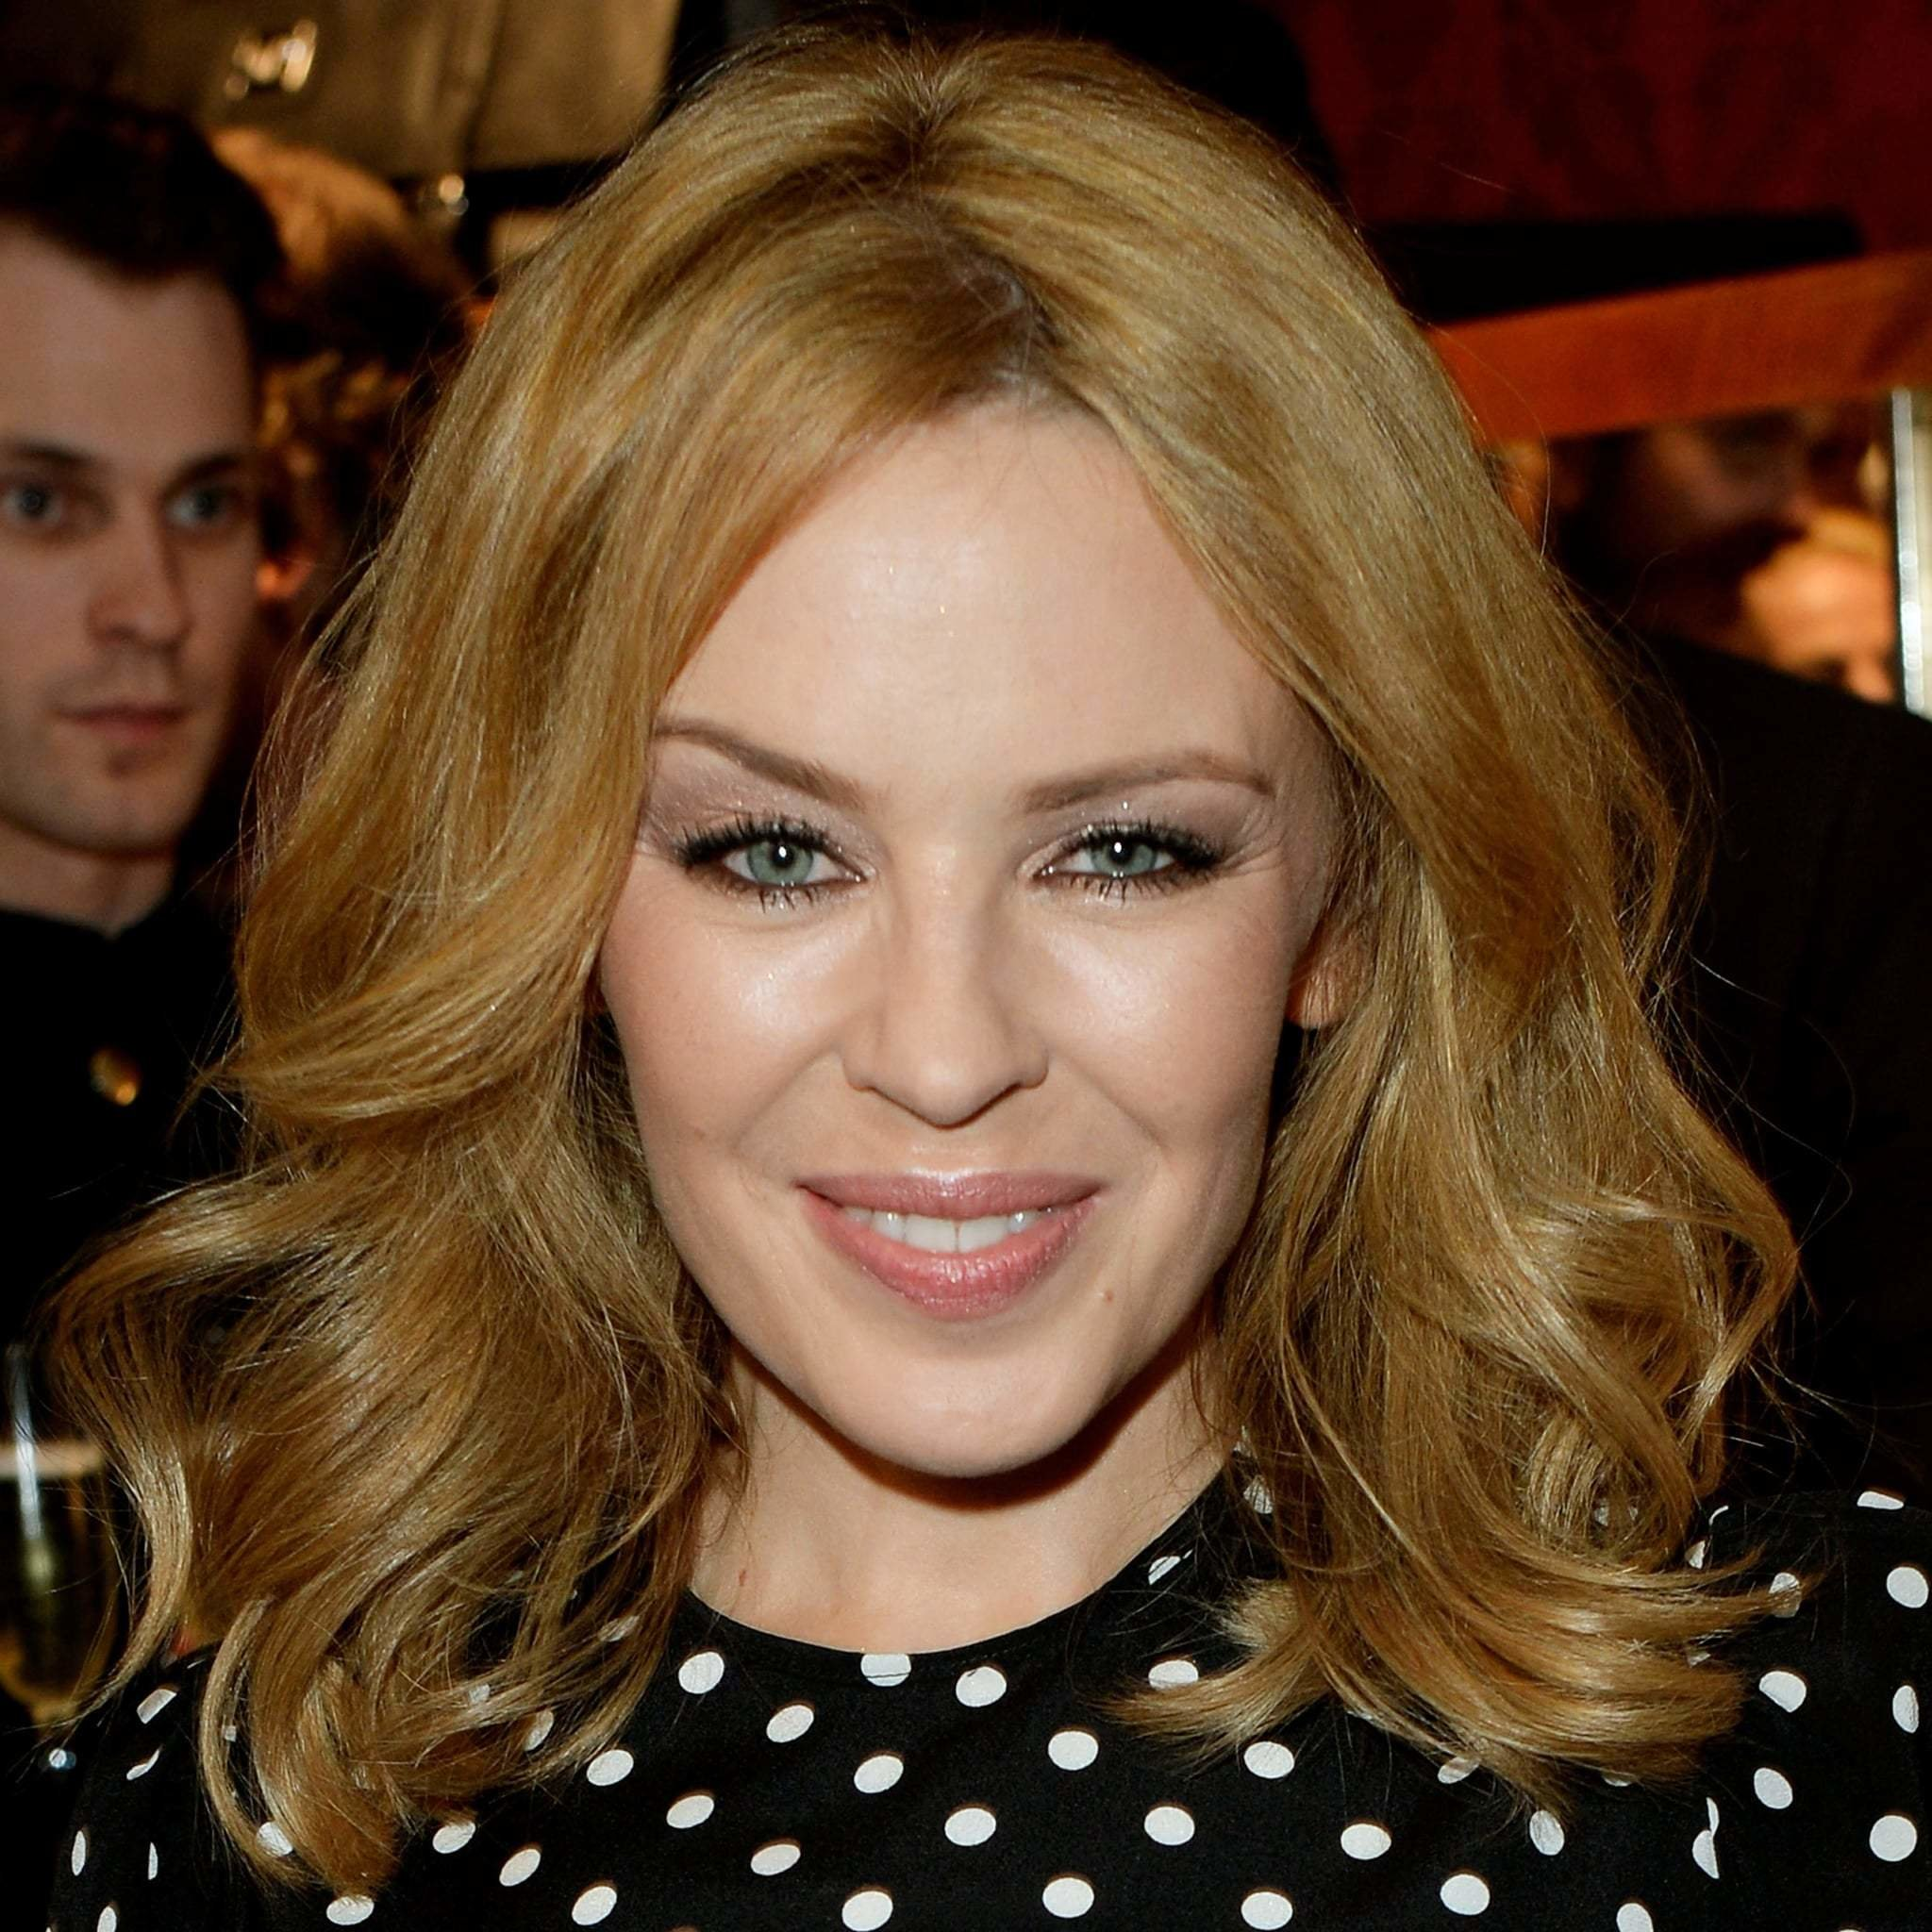 The Best Kylie Minogue With A Lob Haircut For Her The Voice Debut Pictures